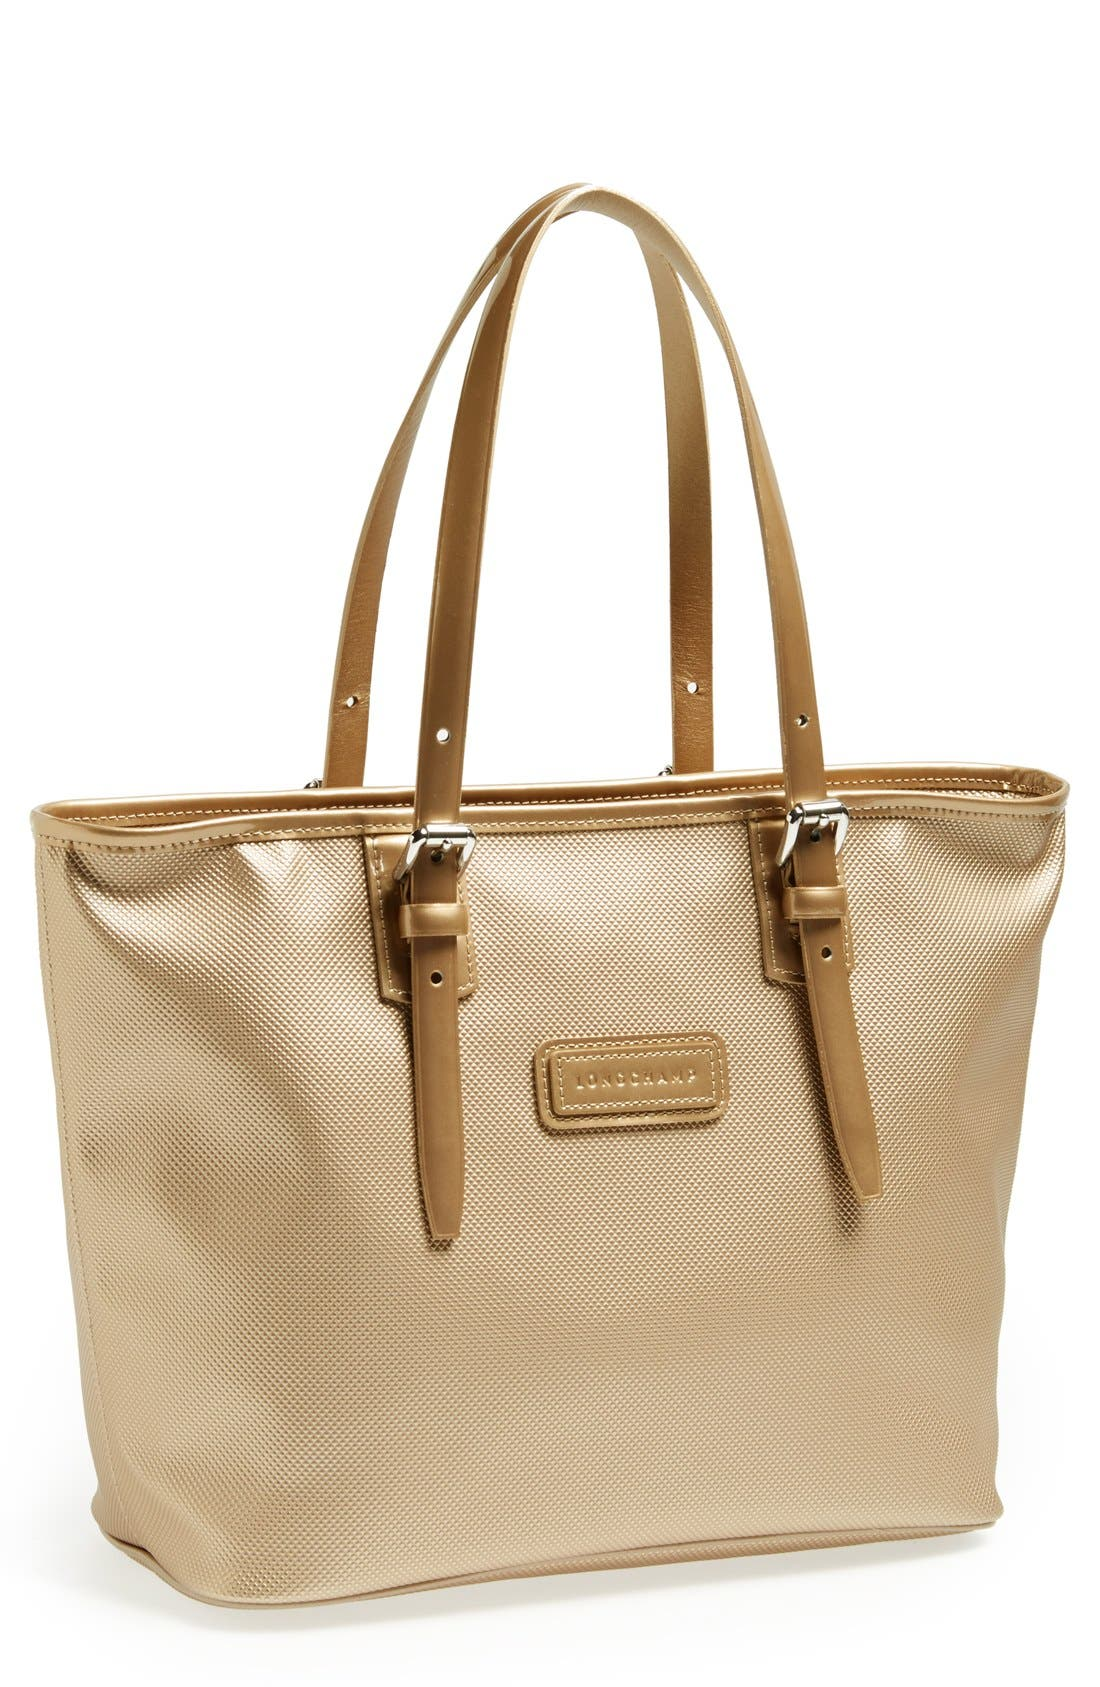 Main Image - Longchamp 'Medium Derby' Tote